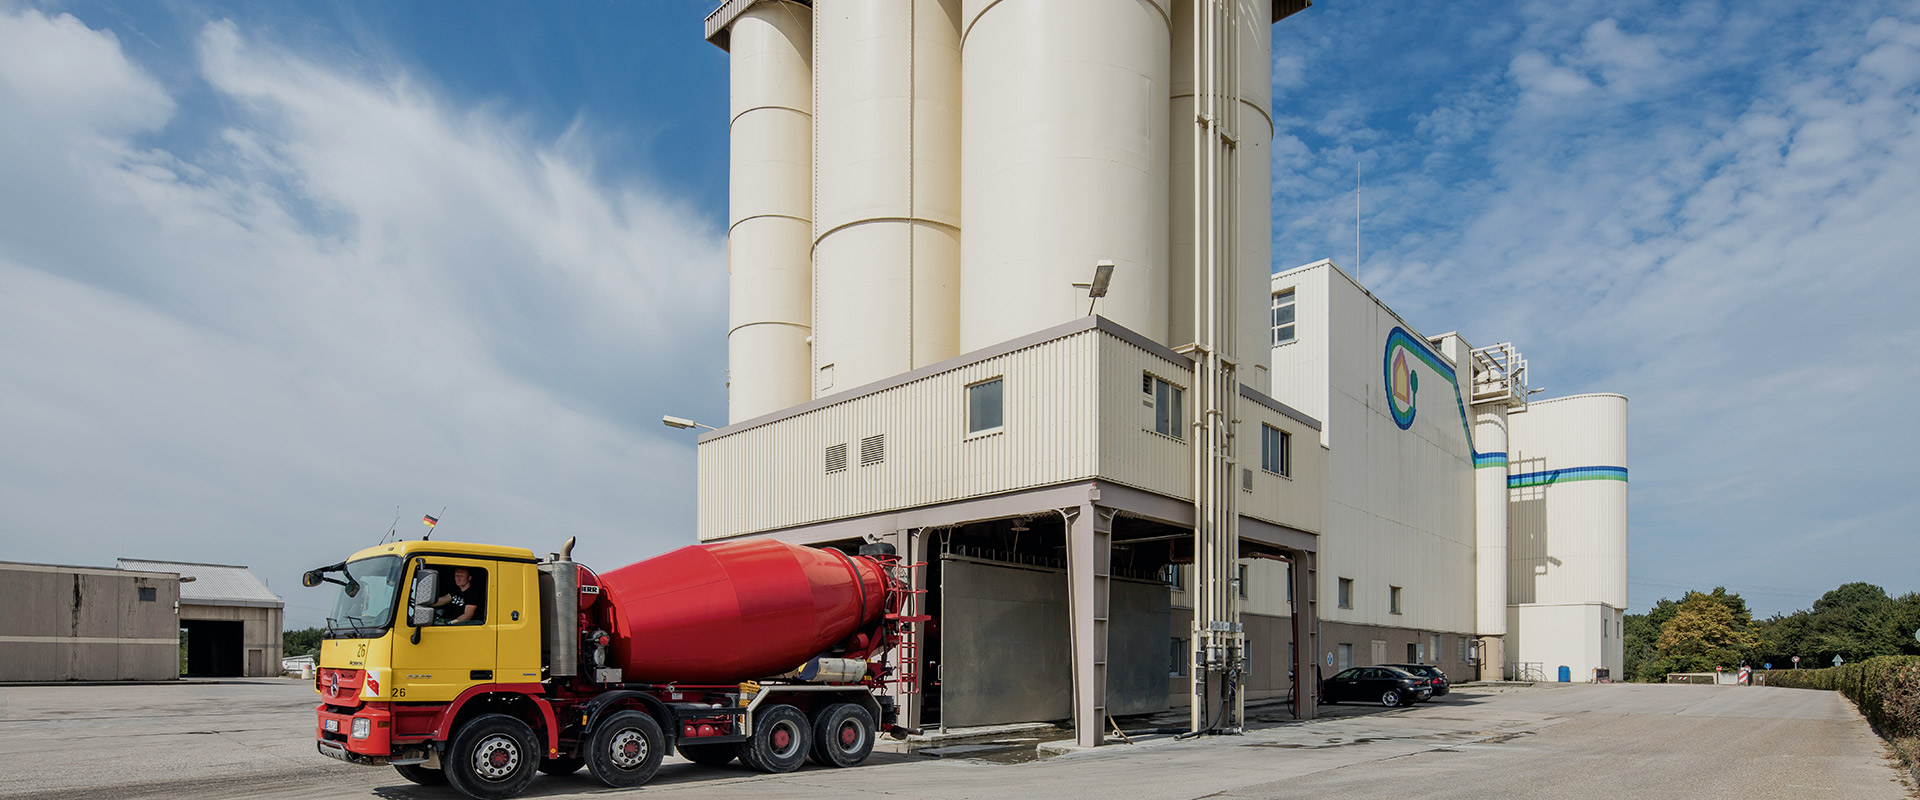 Field of Expertise Ready-mixed concrete industry